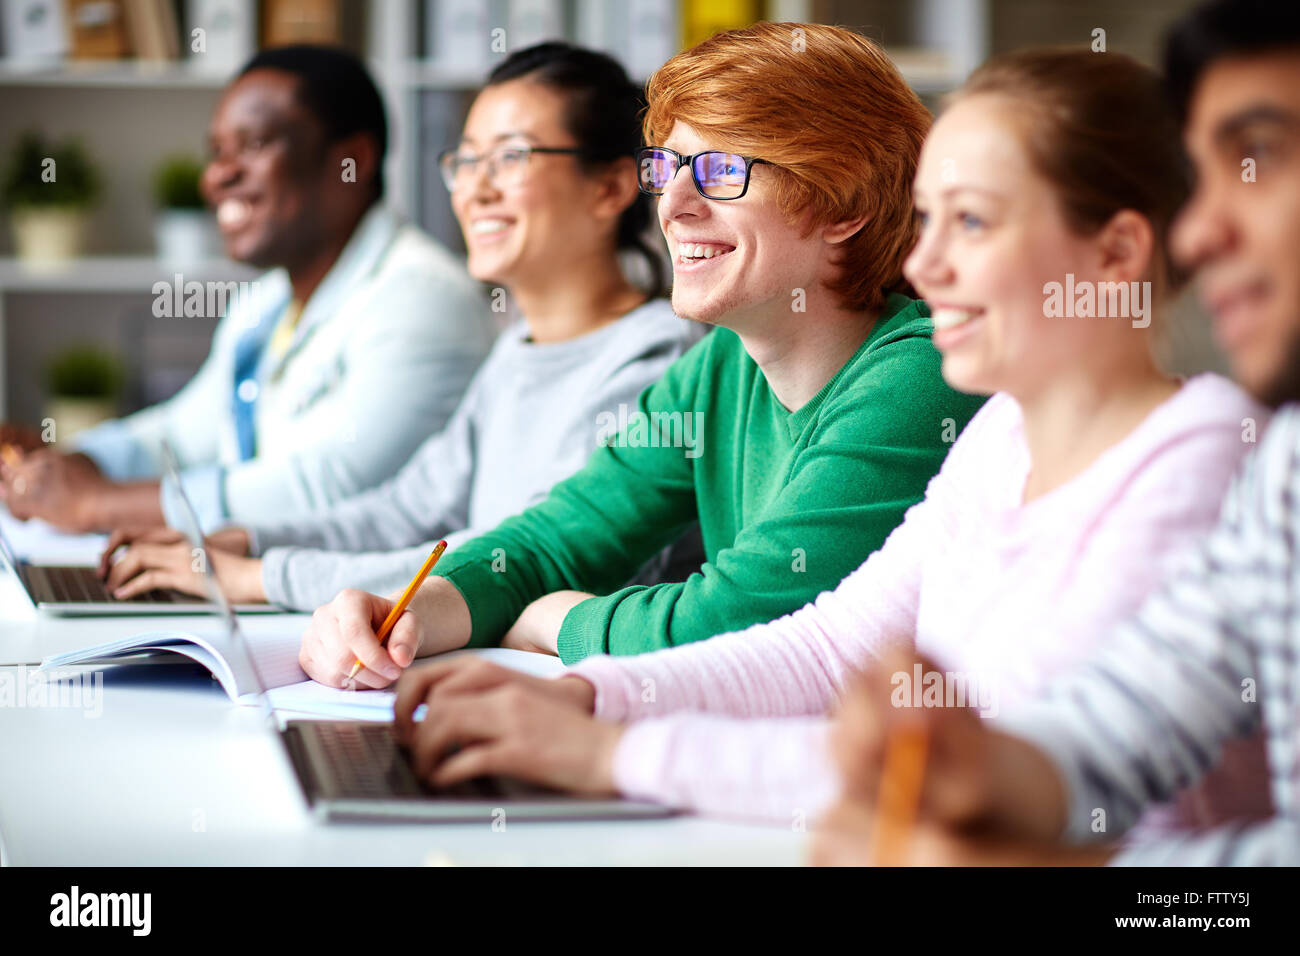 Sitting at lesson - Stock Image